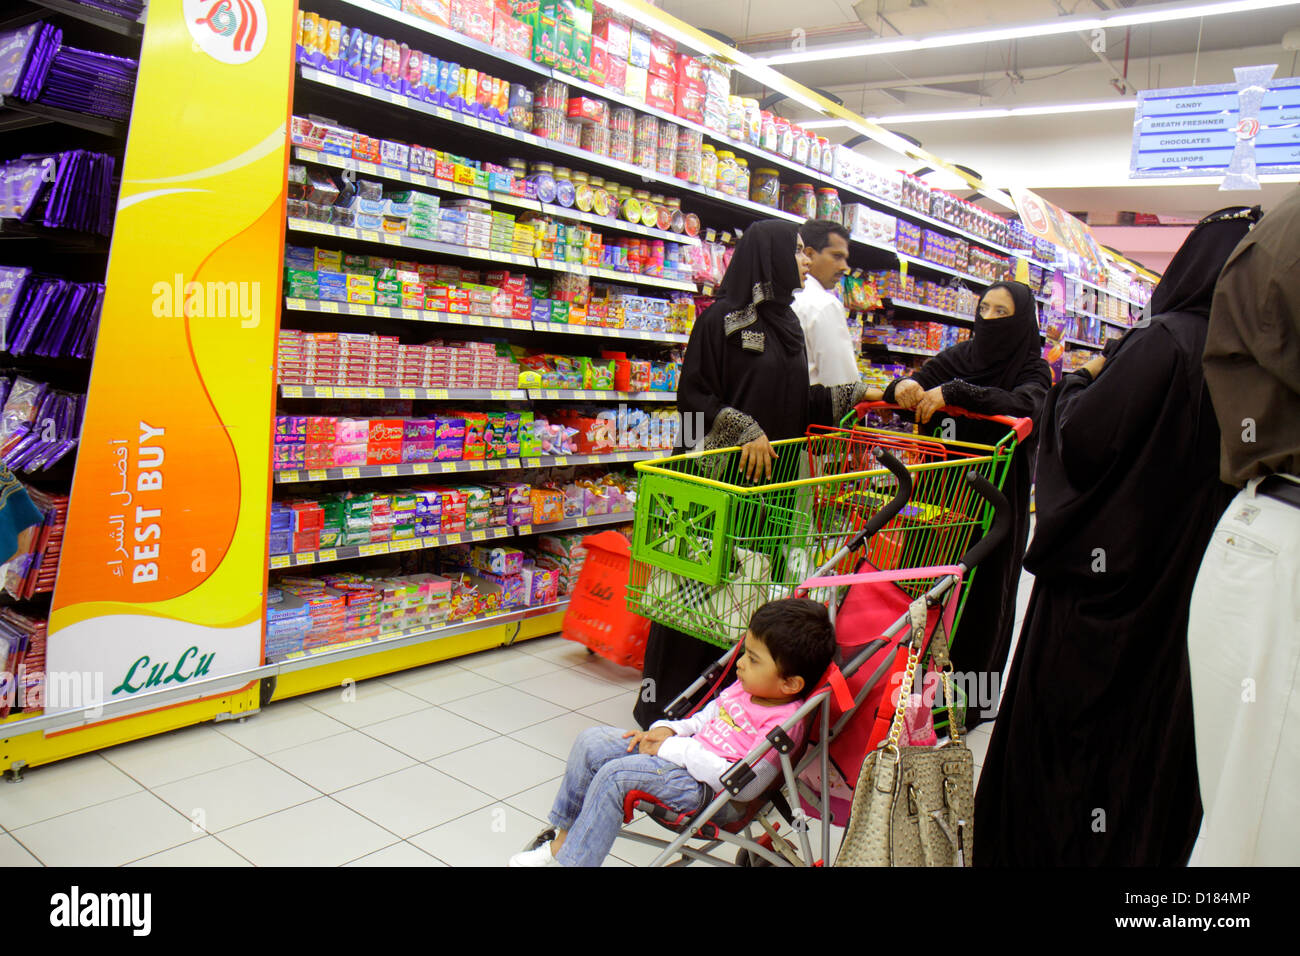 Dubai UAE United Arab Emirates U.A.E. Middle East Al Qusais LuLu Hyper Market shopping grocery store supermarket - Stock Image